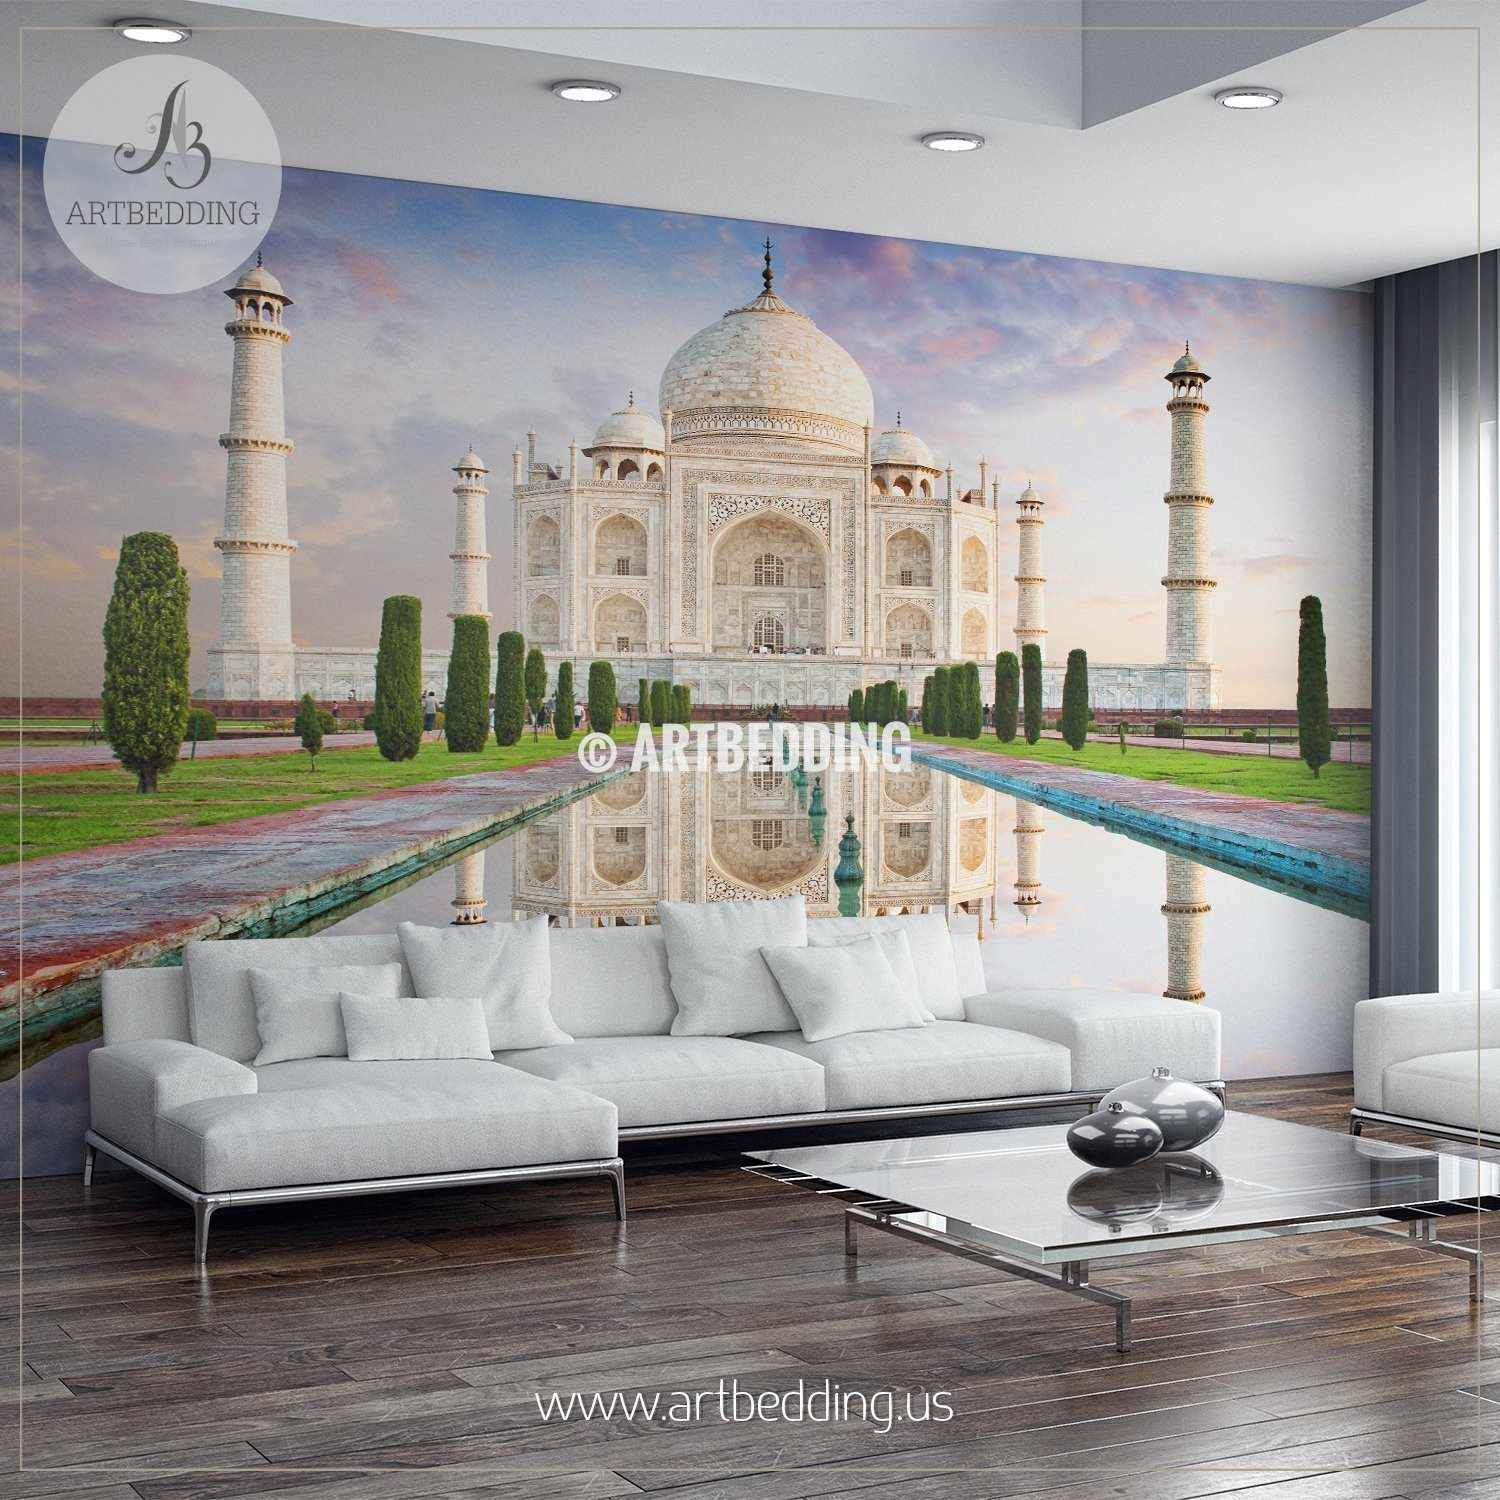 amazing view on the taj mahal during sunset wall mural, india wallamazing view on the taj mahal during sunset, india wall mural, landmarks photo mural